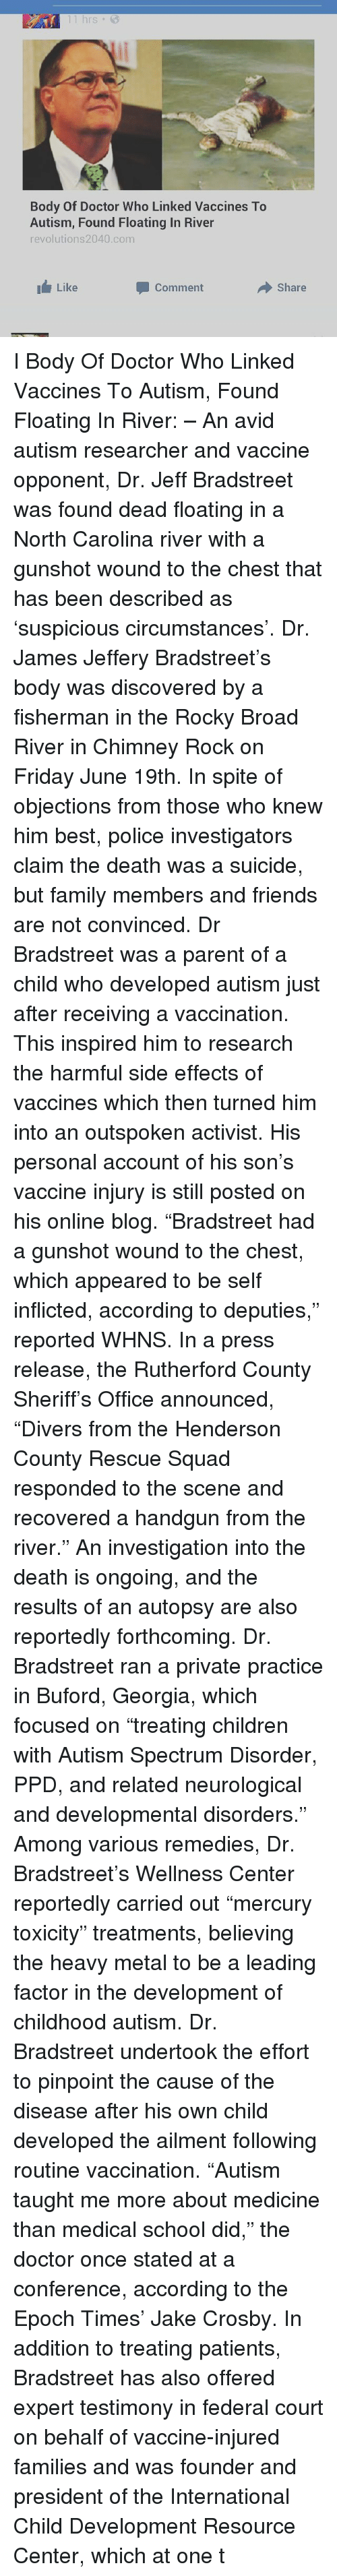 "Memes, Georgia, and North Carolina: 11 hrs  Body Of Doctor Who Linked Vaccines To  Autism, Found Floating In River  revolutions2040 com  Like  Comment  Share I Body Of Doctor Who Linked Vaccines To Autism, Found Floating In River: – An avid autism researcher and vaccine opponent, Dr. Jeff Bradstreet was found dead floating in a North Carolina river with a gunshot wound to the chest that has been described as 'suspicious circumstances'. Dr. James Jeffery Bradstreet's body was discovered by a fisherman in the Rocky Broad River in Chimney Rock on Friday June 19th. In spite of objections from those who knew him best, police investigators claim the death was a suicide, but family members and friends are not convinced. Dr Bradstreet was a parent of a child who developed autism just after receiving a vaccination. This inspired him to research the harmful side effects of vaccines which then turned him into an outspoken activist. His personal account of his son's vaccine injury is still posted on his online blog. ""Bradstreet had a gunshot wound to the chest, which appeared to be self inflicted, according to deputies,"" reported WHNS. In a press release, the Rutherford County Sheriff's Office announced, ""Divers from the Henderson County Rescue Squad responded to the scene and recovered a handgun from the river."" An investigation into the death is ongoing, and the results of an autopsy are also reportedly forthcoming. Dr. Bradstreet ran a private practice in Buford, Georgia, which focused on ""treating children with Autism Spectrum Disorder, PPD, and related neurological and developmental disorders."" Among various remedies, Dr. Bradstreet's Wellness Center reportedly carried out ""mercury toxicity"" treatments, believing the heavy metal to be a leading factor in the development of childhood autism. Dr. Bradstreet undertook the effort to pinpoint the cause of the disease after his own child developed the ailment following routine vaccination. ""Autism taught me more about medicine than medical school did,"" the doctor once stated at a conference, according to the Epoch Times' Jake Crosby. In addition to treating patients, Bradstreet has also offered expert testimony in federal court on behalf of vaccine-injured families and was founder and president of the International Child Development Resource Center, which at one t"